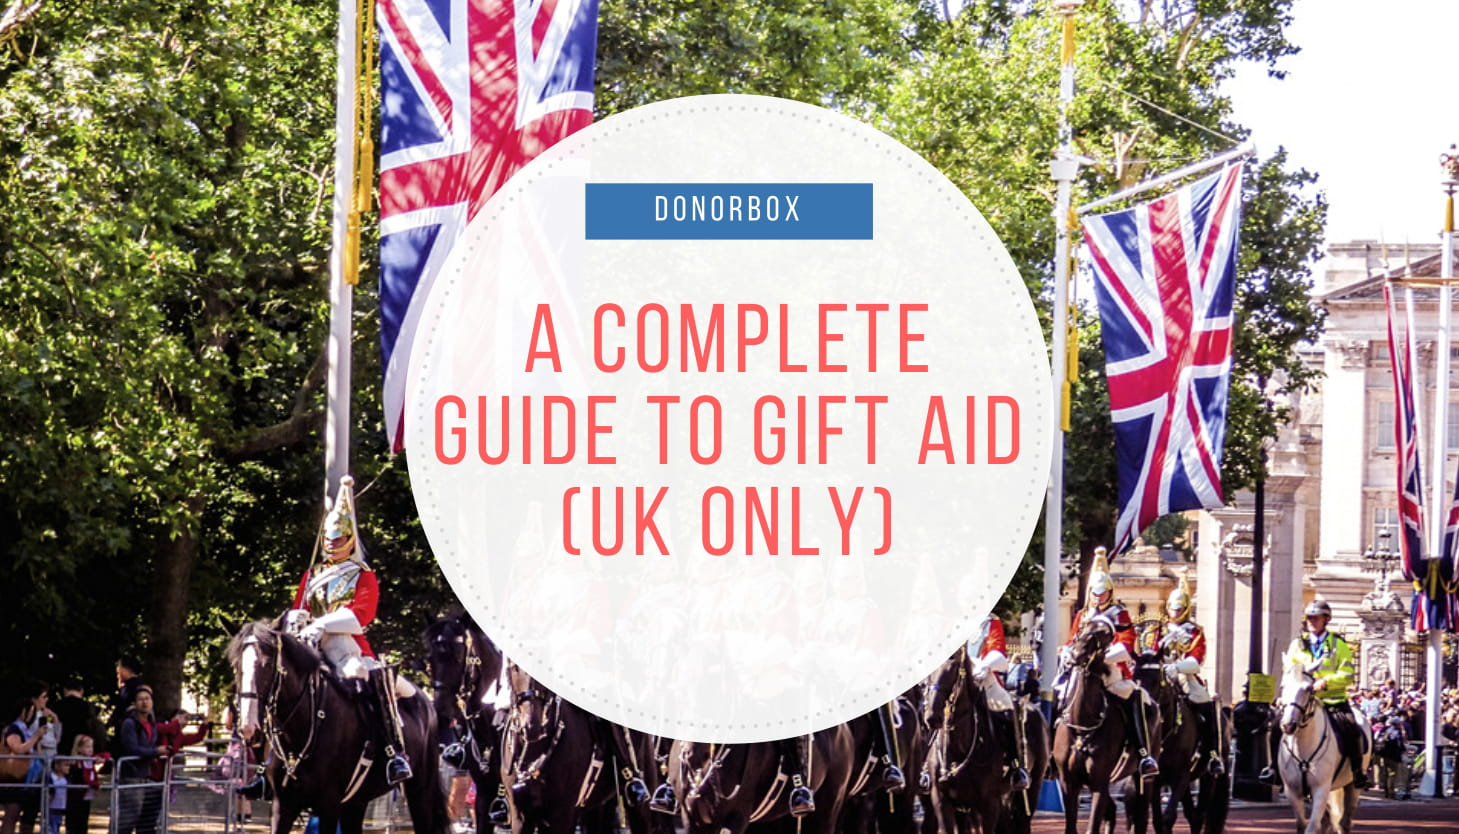 A Complete Guide to Gift Aid For UK-based charities